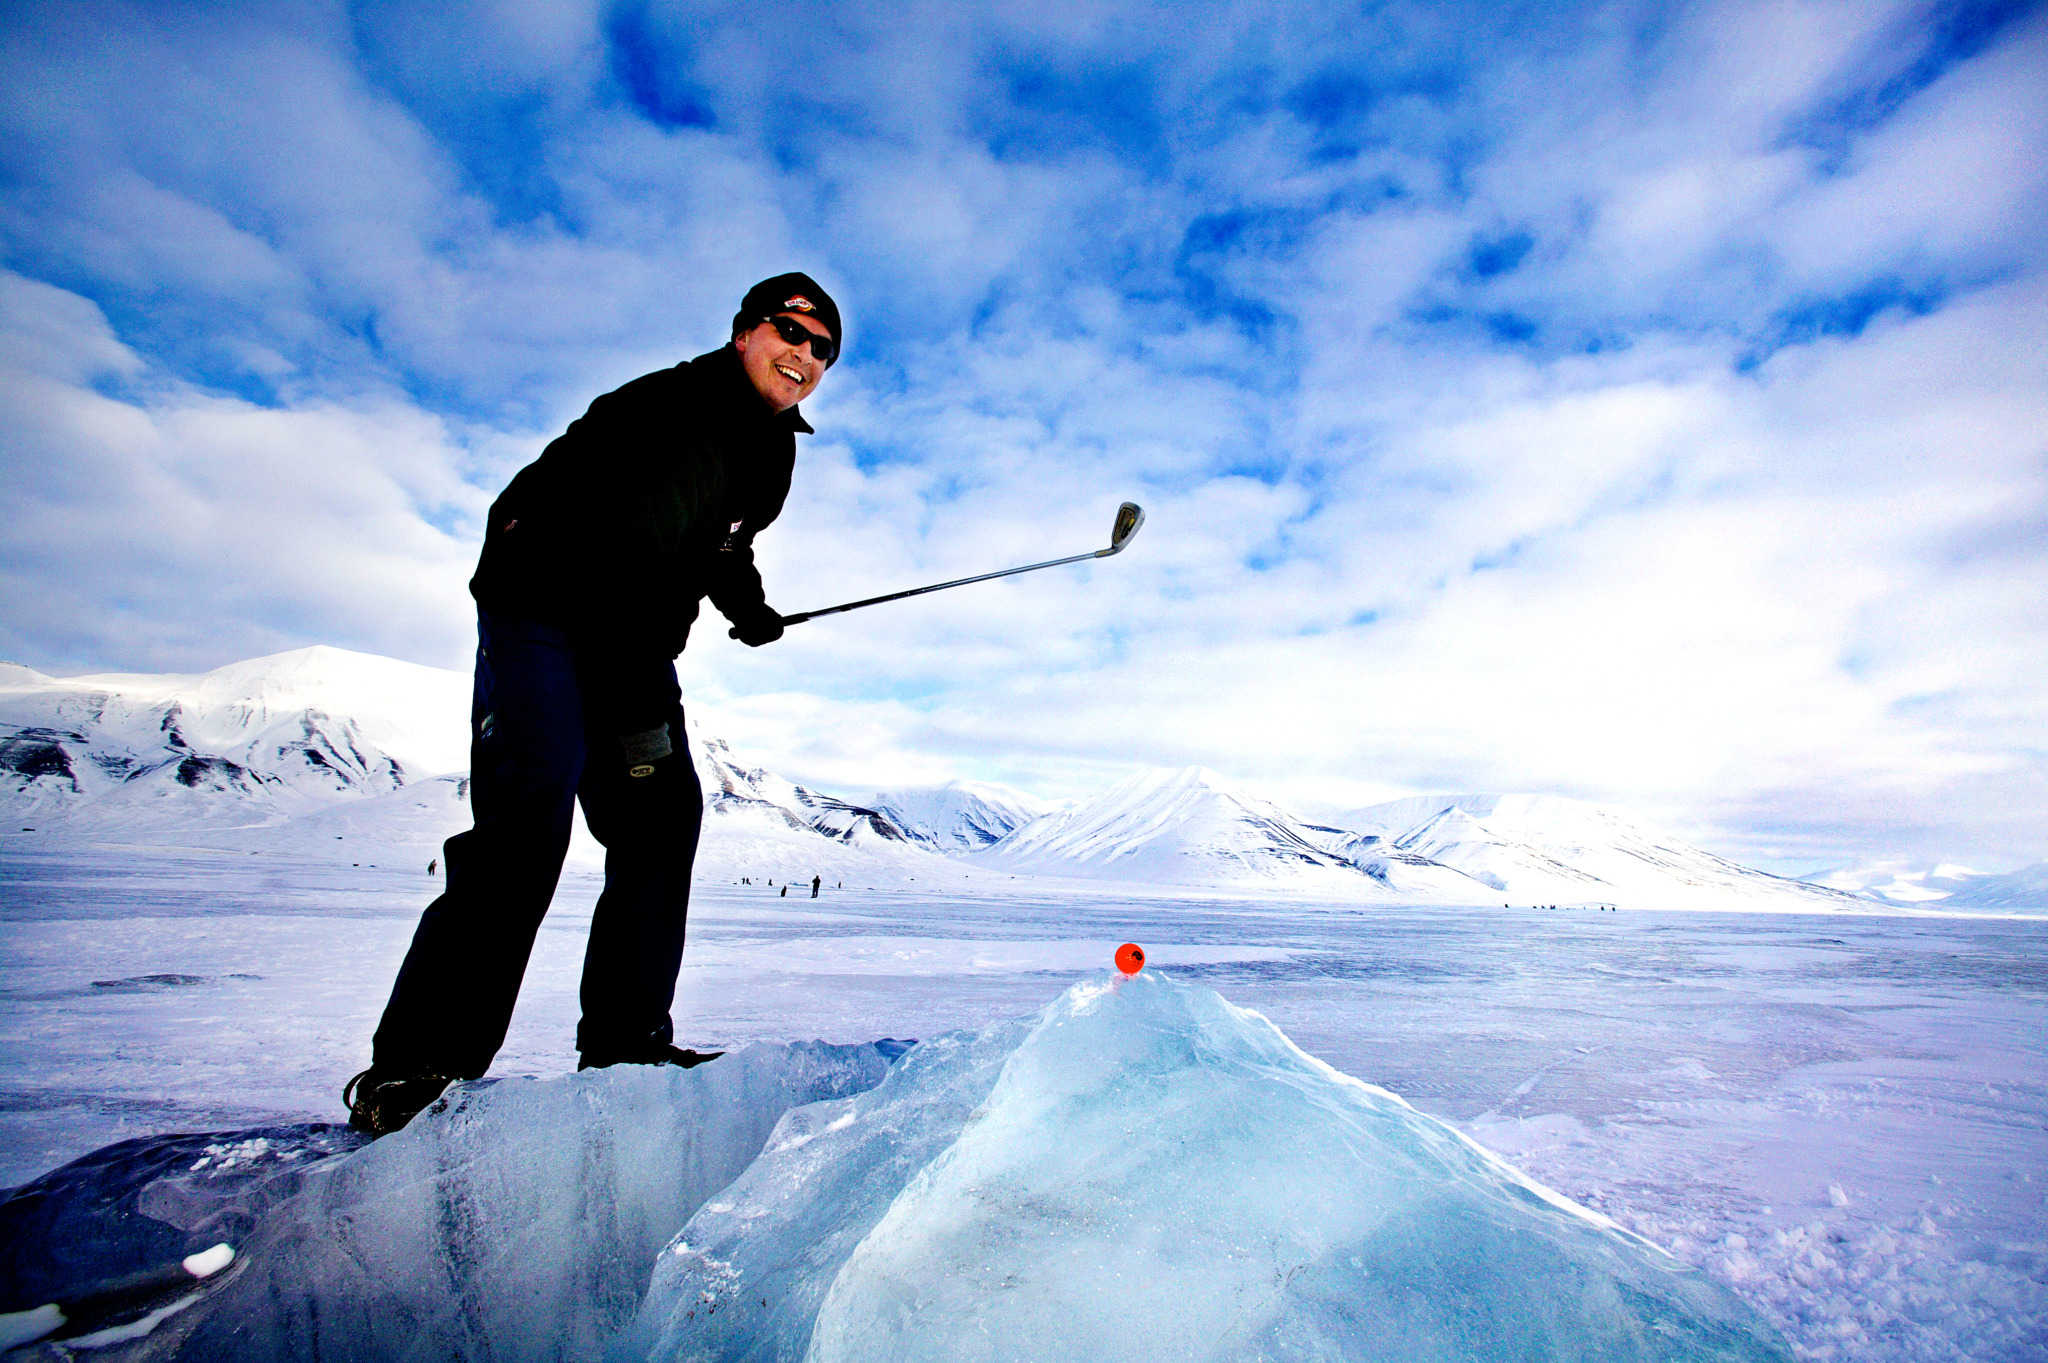 golf_tips_dove_giocare_a_golf_inverno_man_playing_golf_on_ice